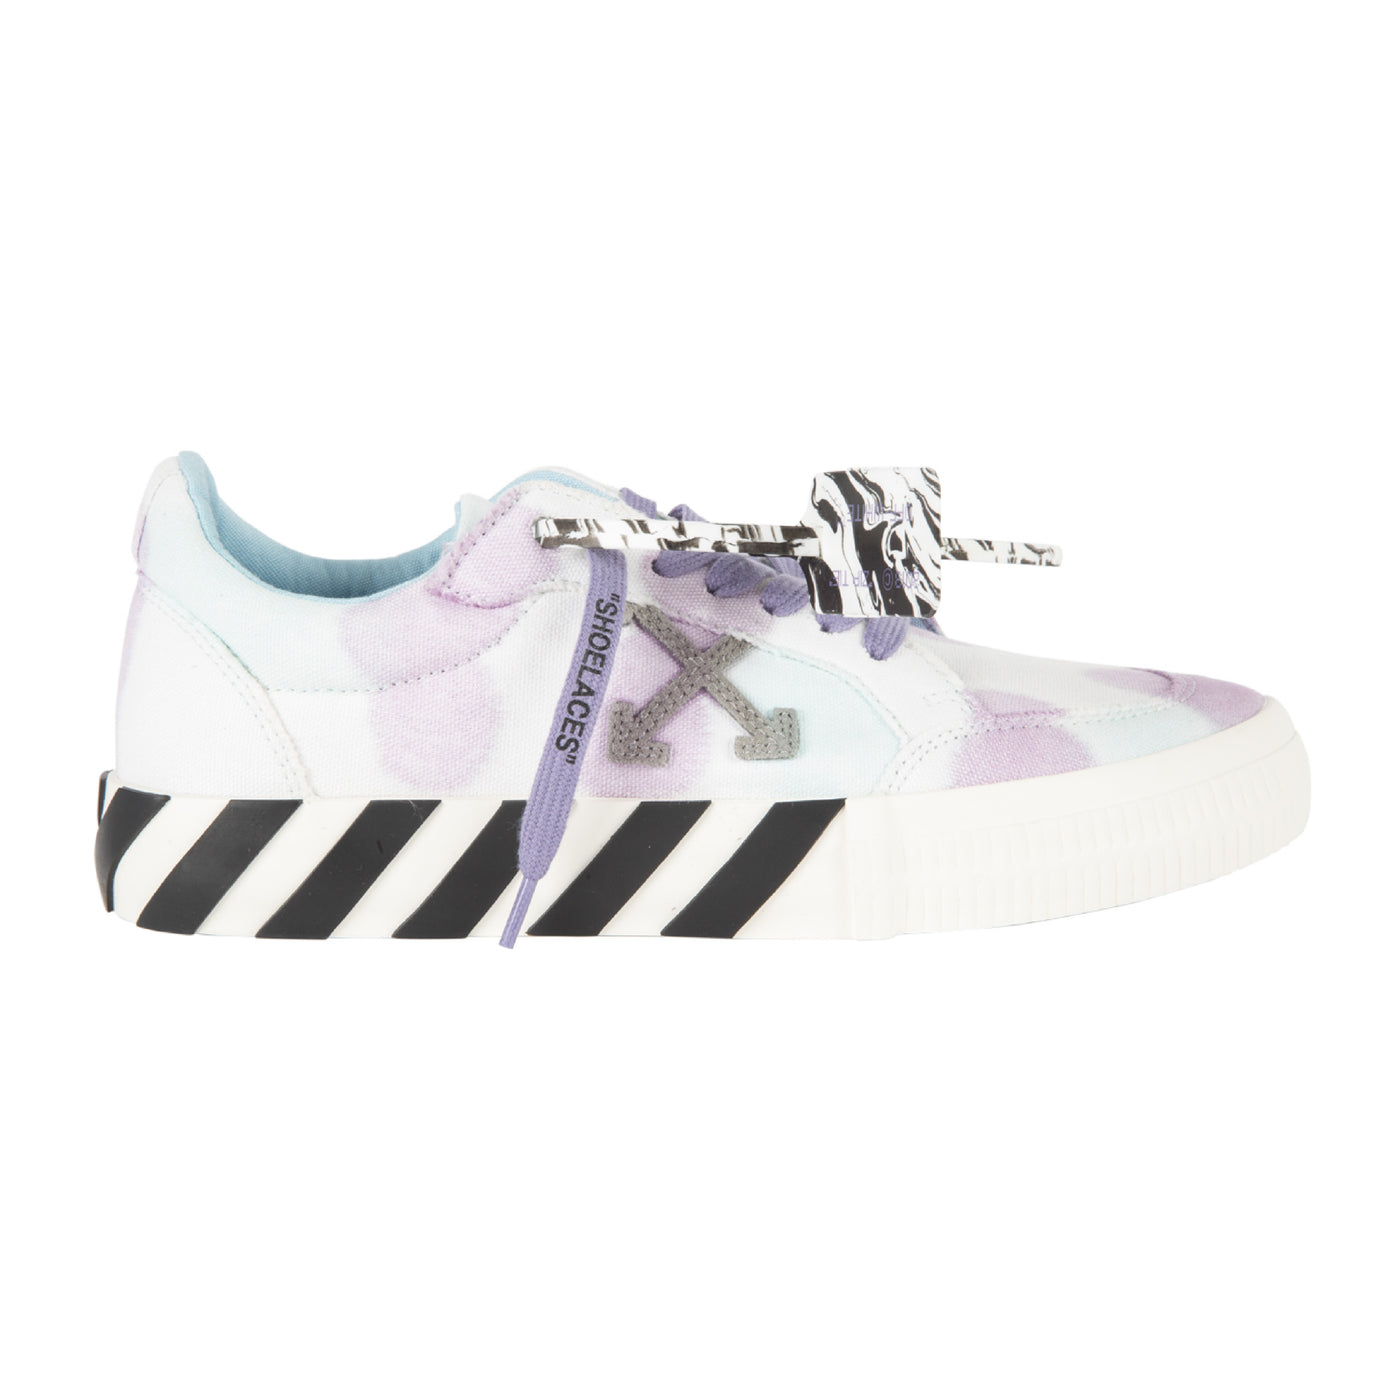 Load image into Gallery viewer, OFF-WHITE TIE-DYE LOW VULCANIZED SNEAKER WHITE